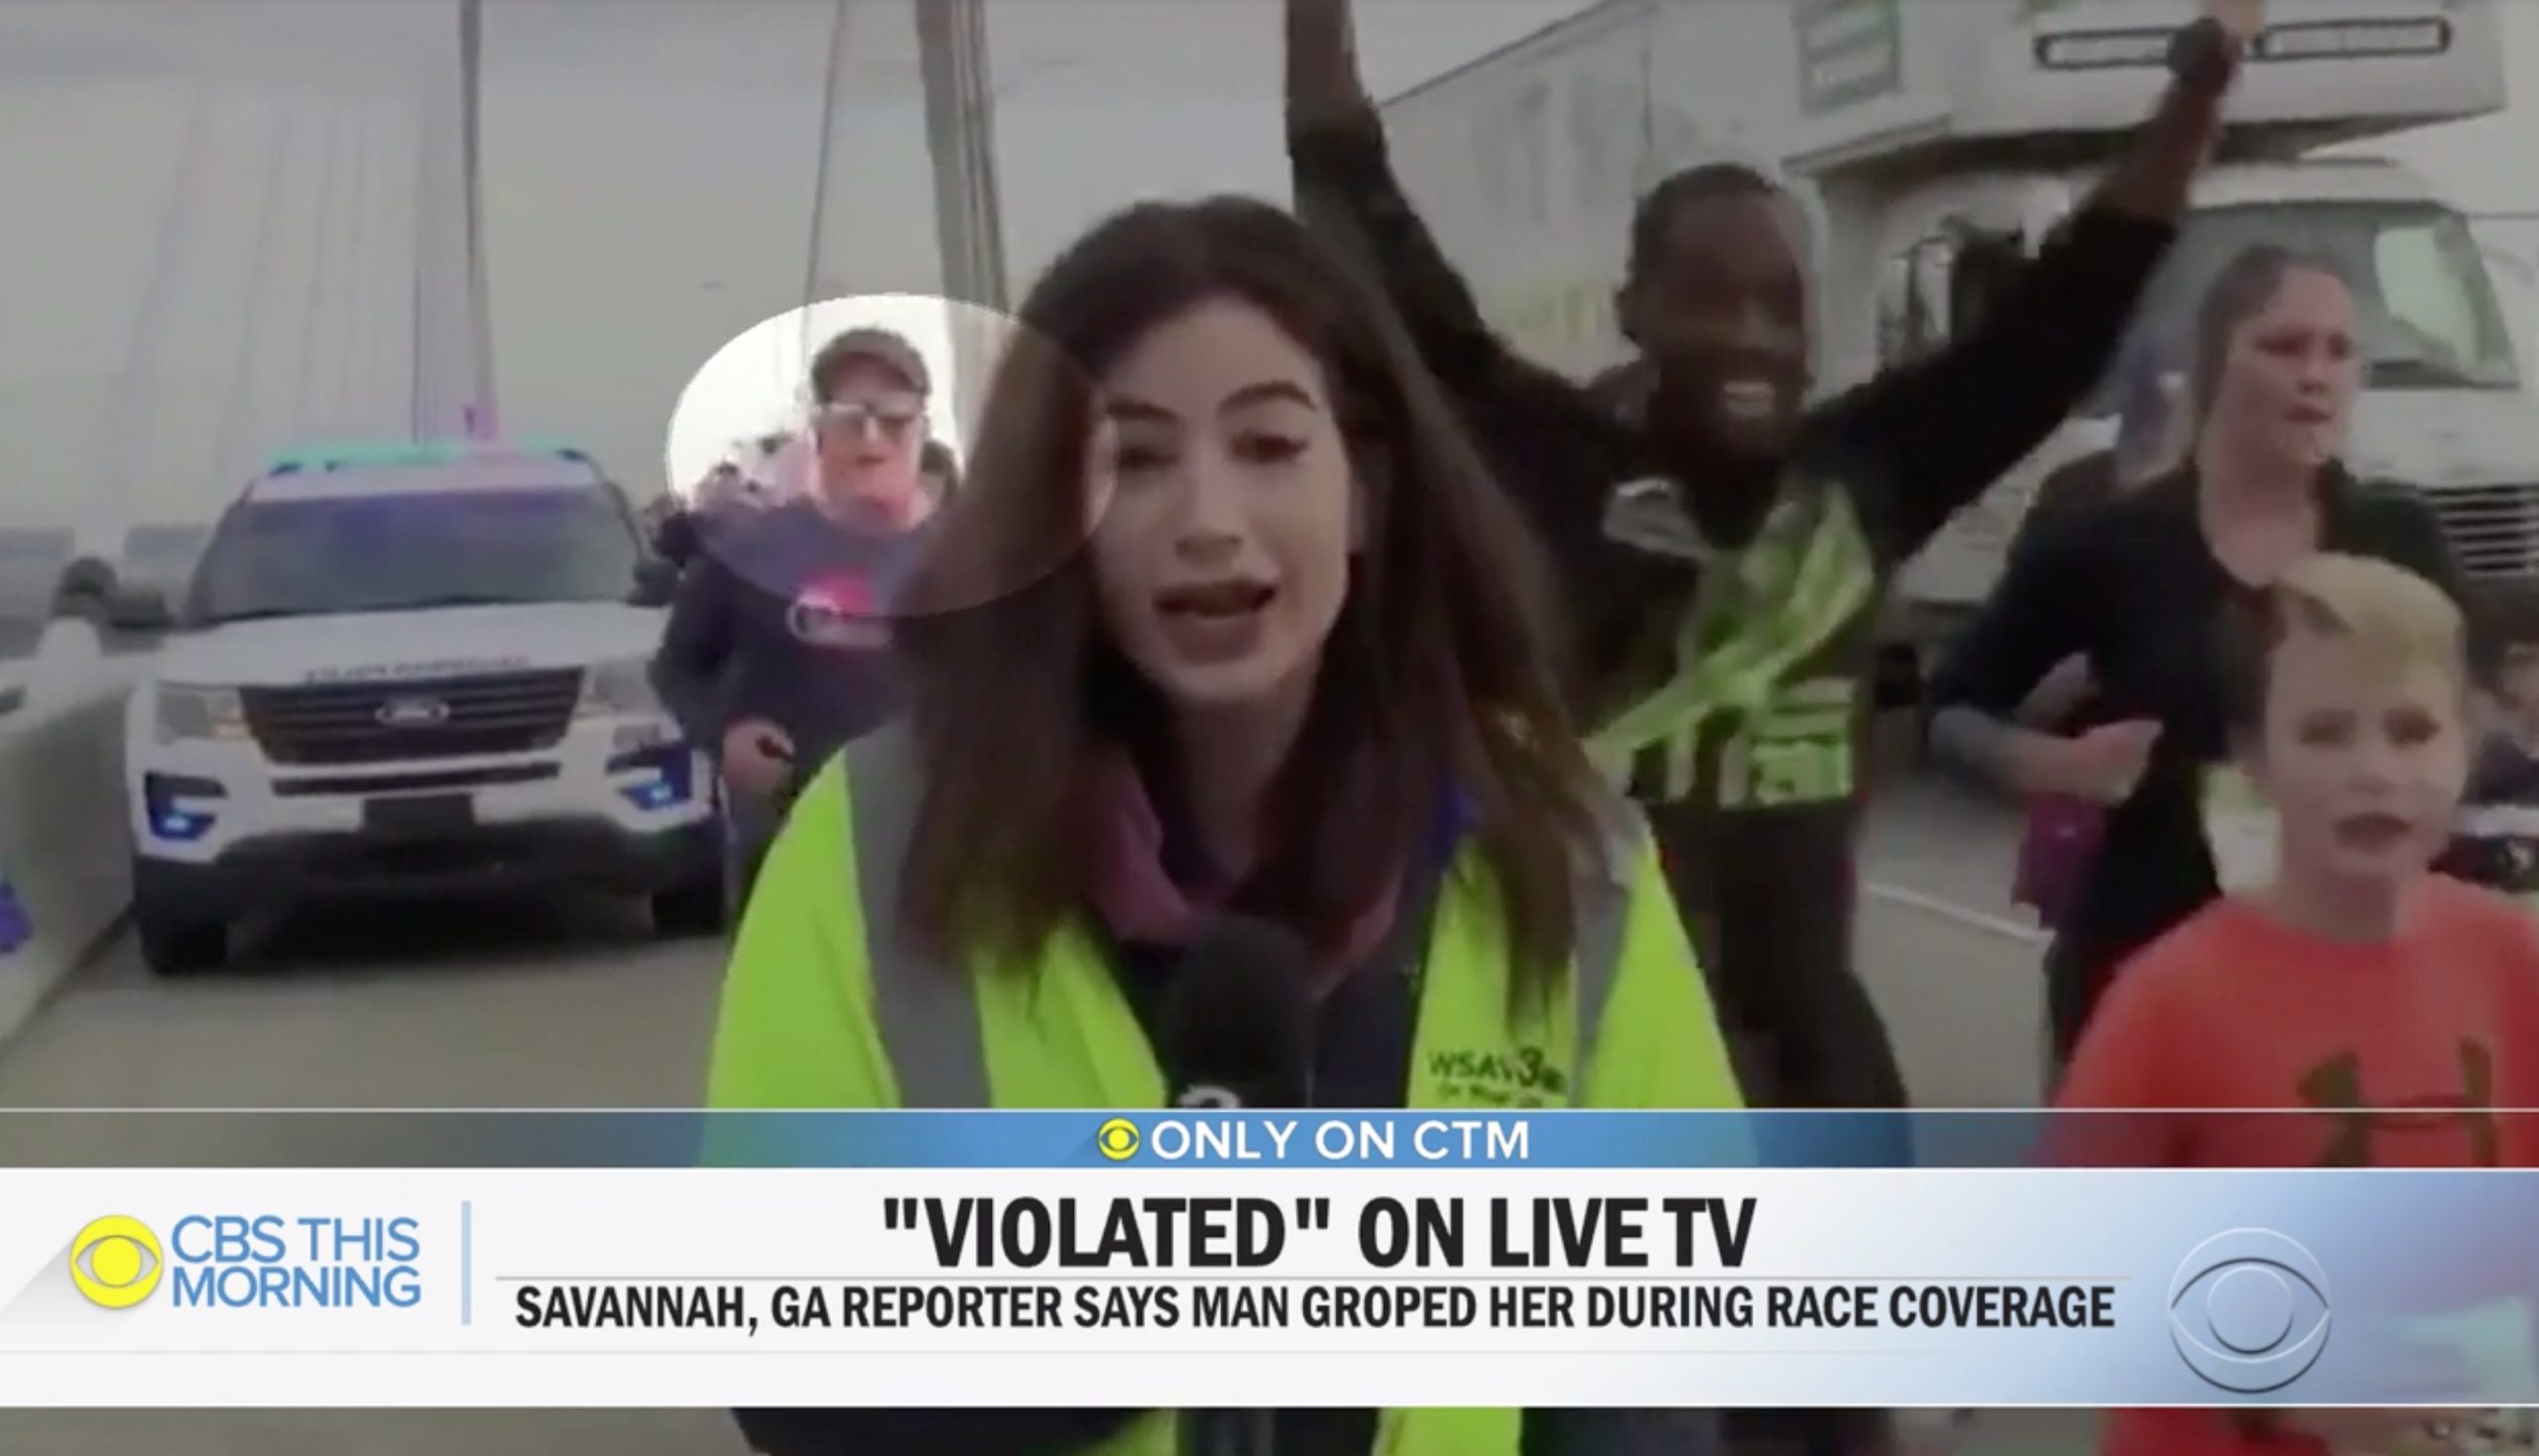 Runner Who Slapped Reporter's Butt on Live TV Identified as Church Youth Group Leader